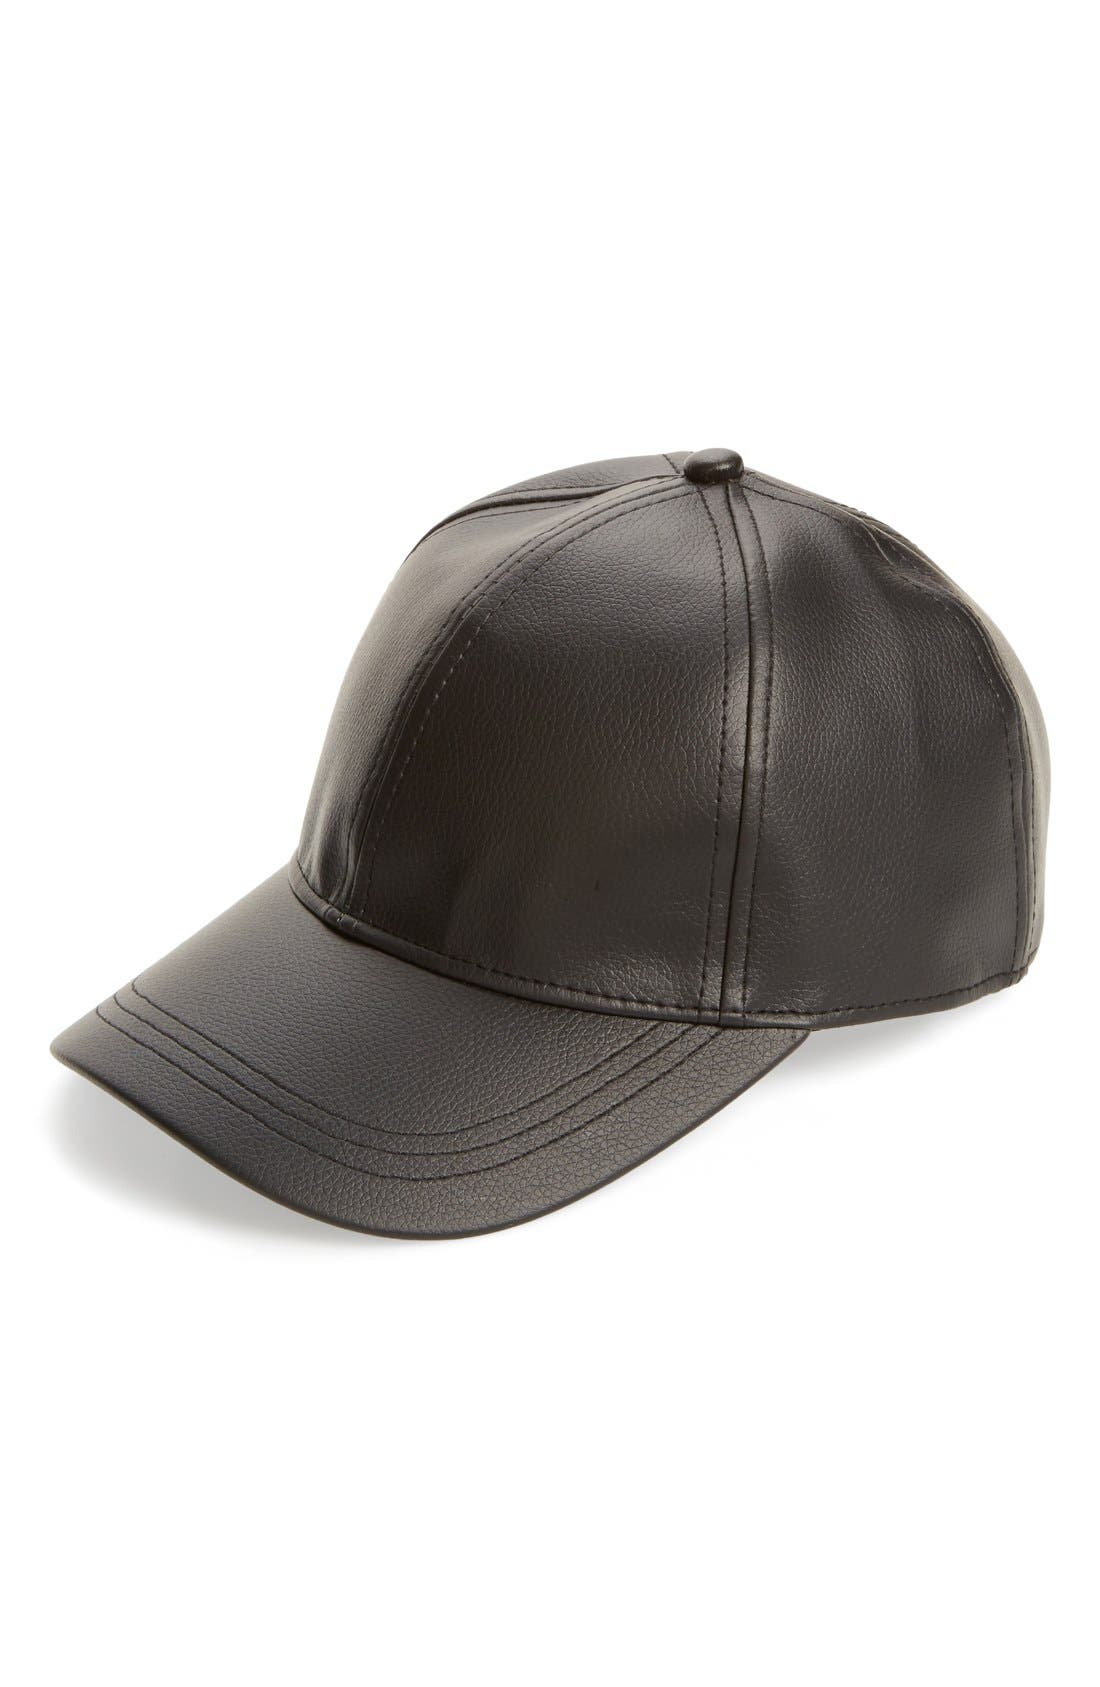 August Hat Faux Leather Baseball Cap